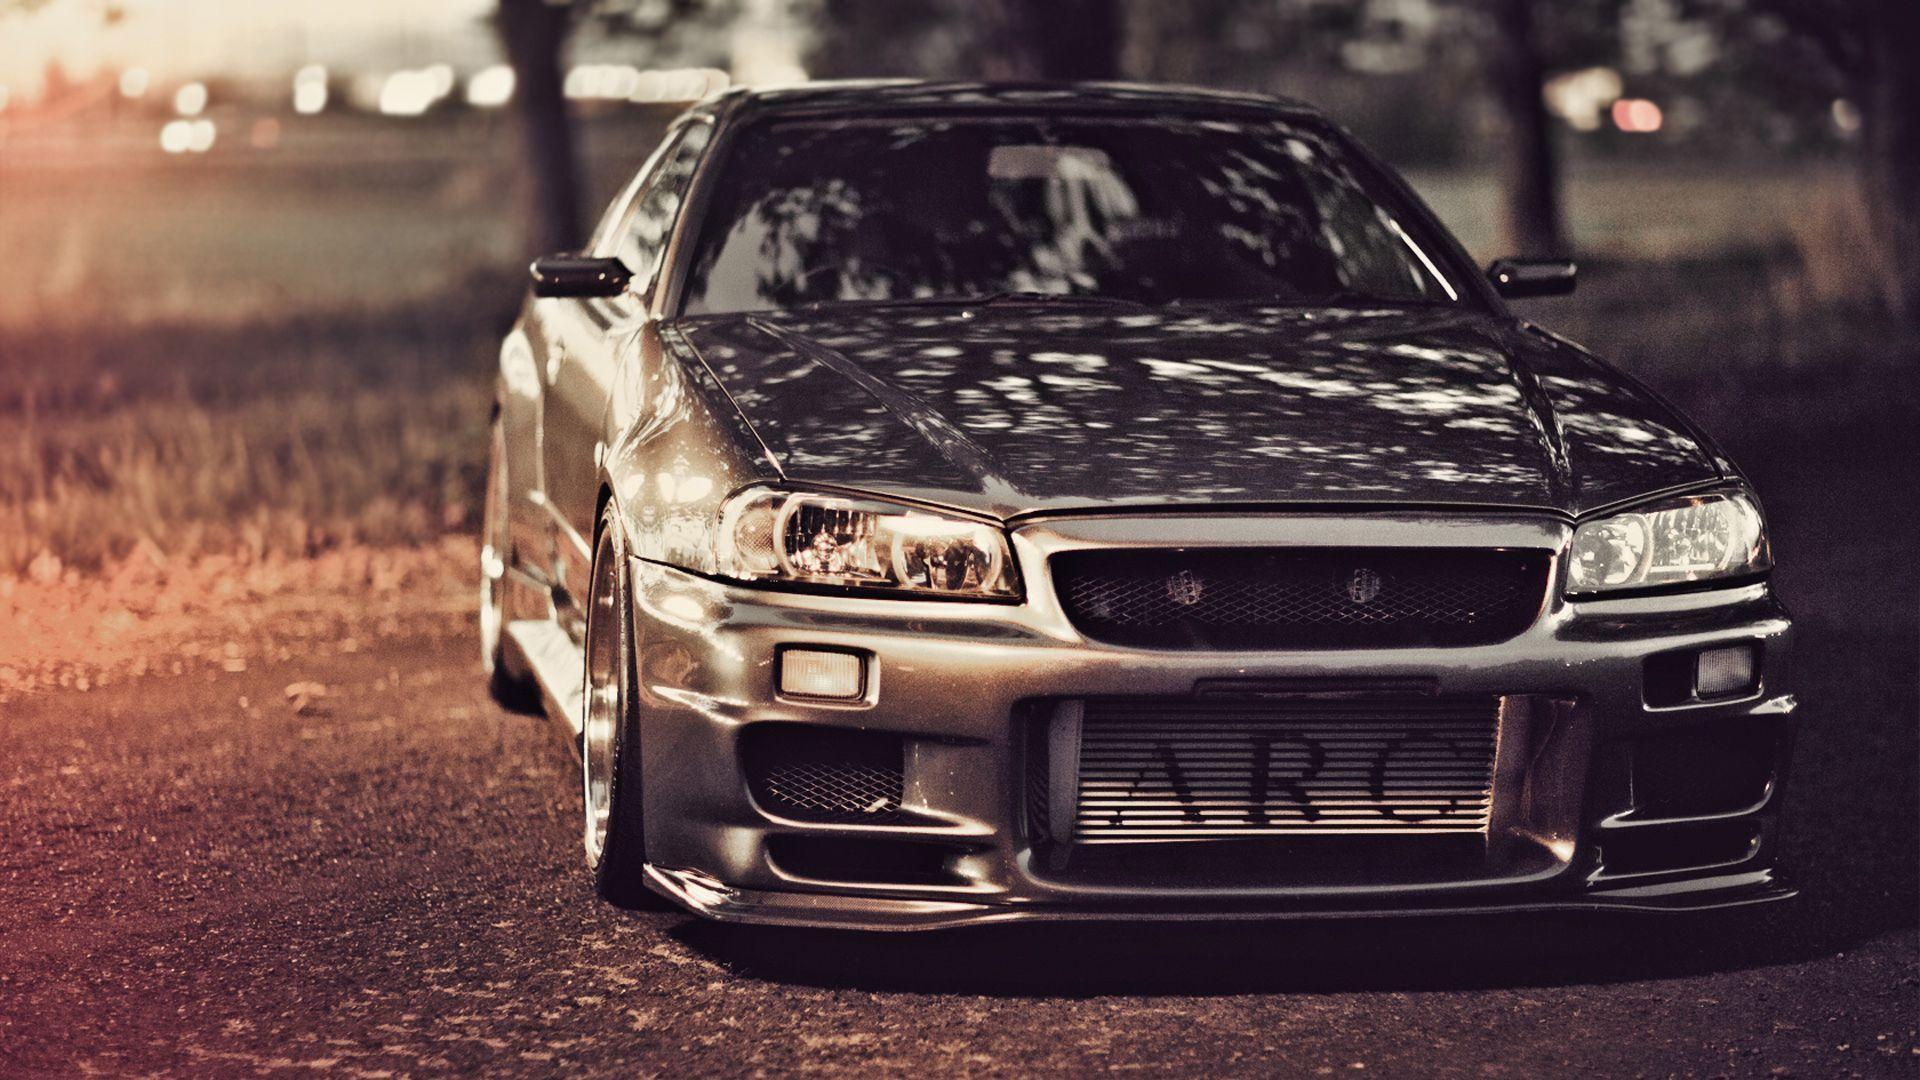 Free Download Nissan Skyline Gtr R34 Wallpapers 1920x1080 For Your